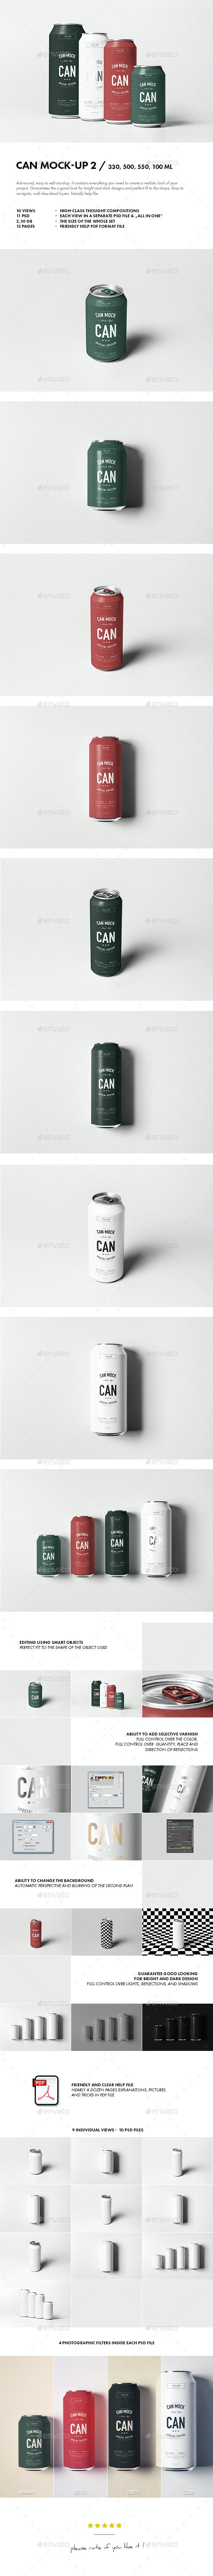 Can Mock-up 2 - Food and Drink Packaging